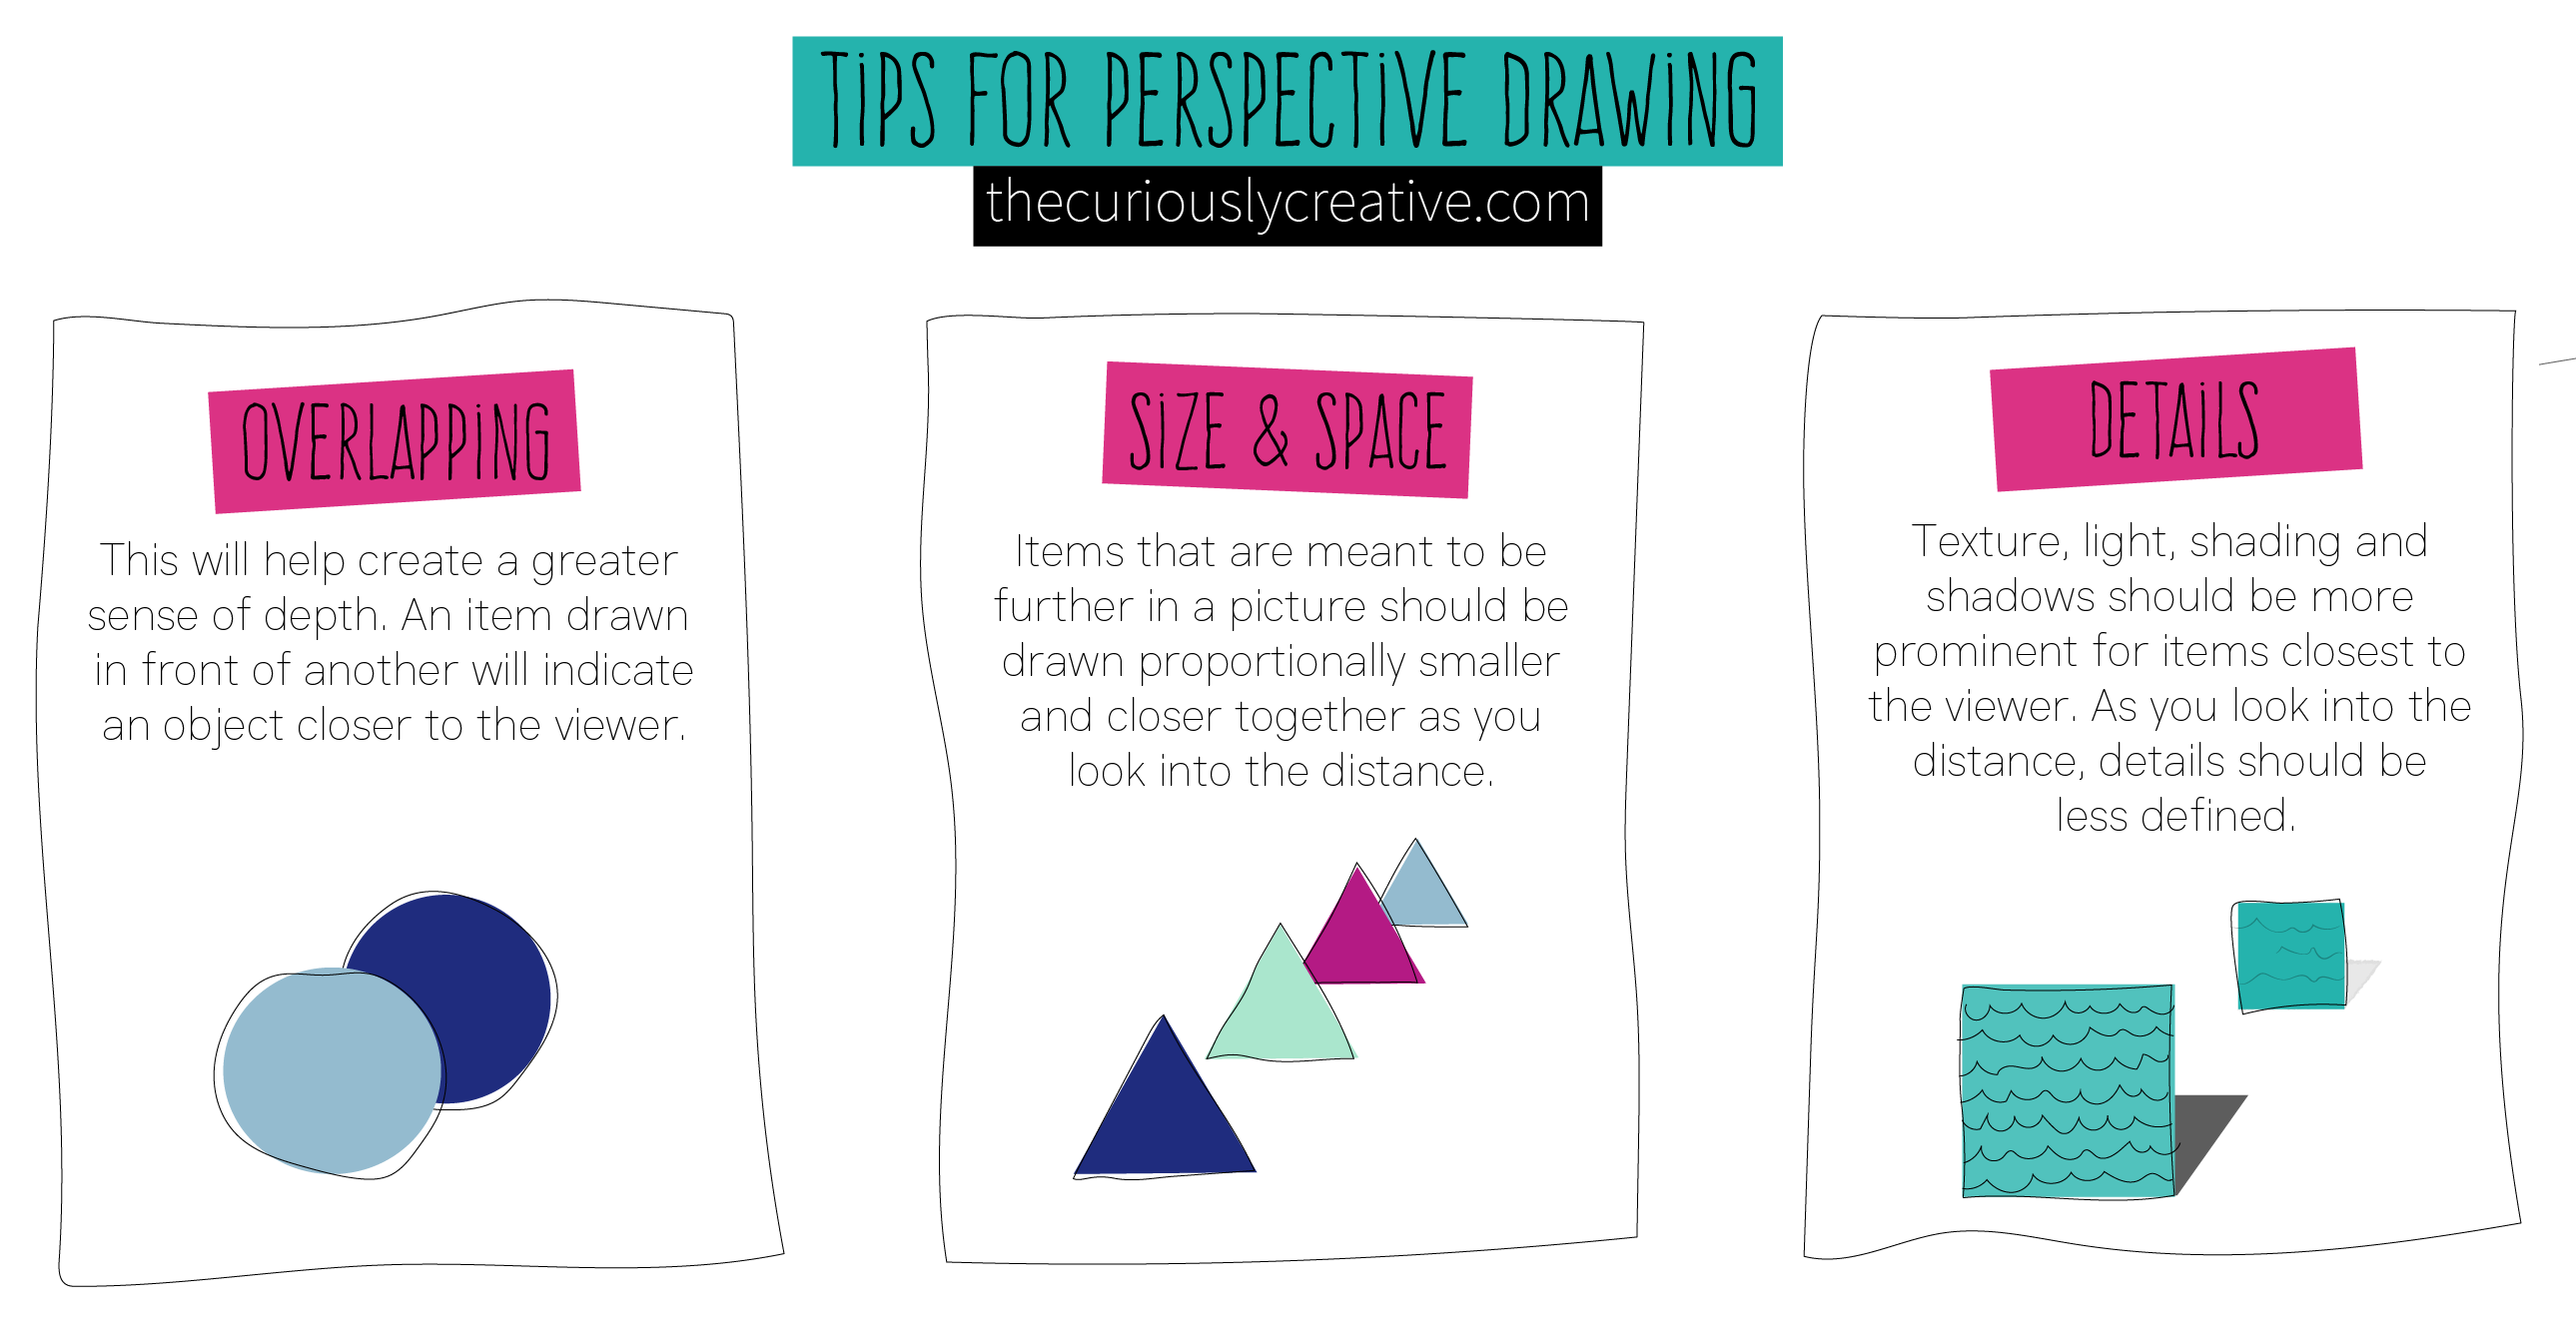 Attic drawing perspective. Week perspectives tips the